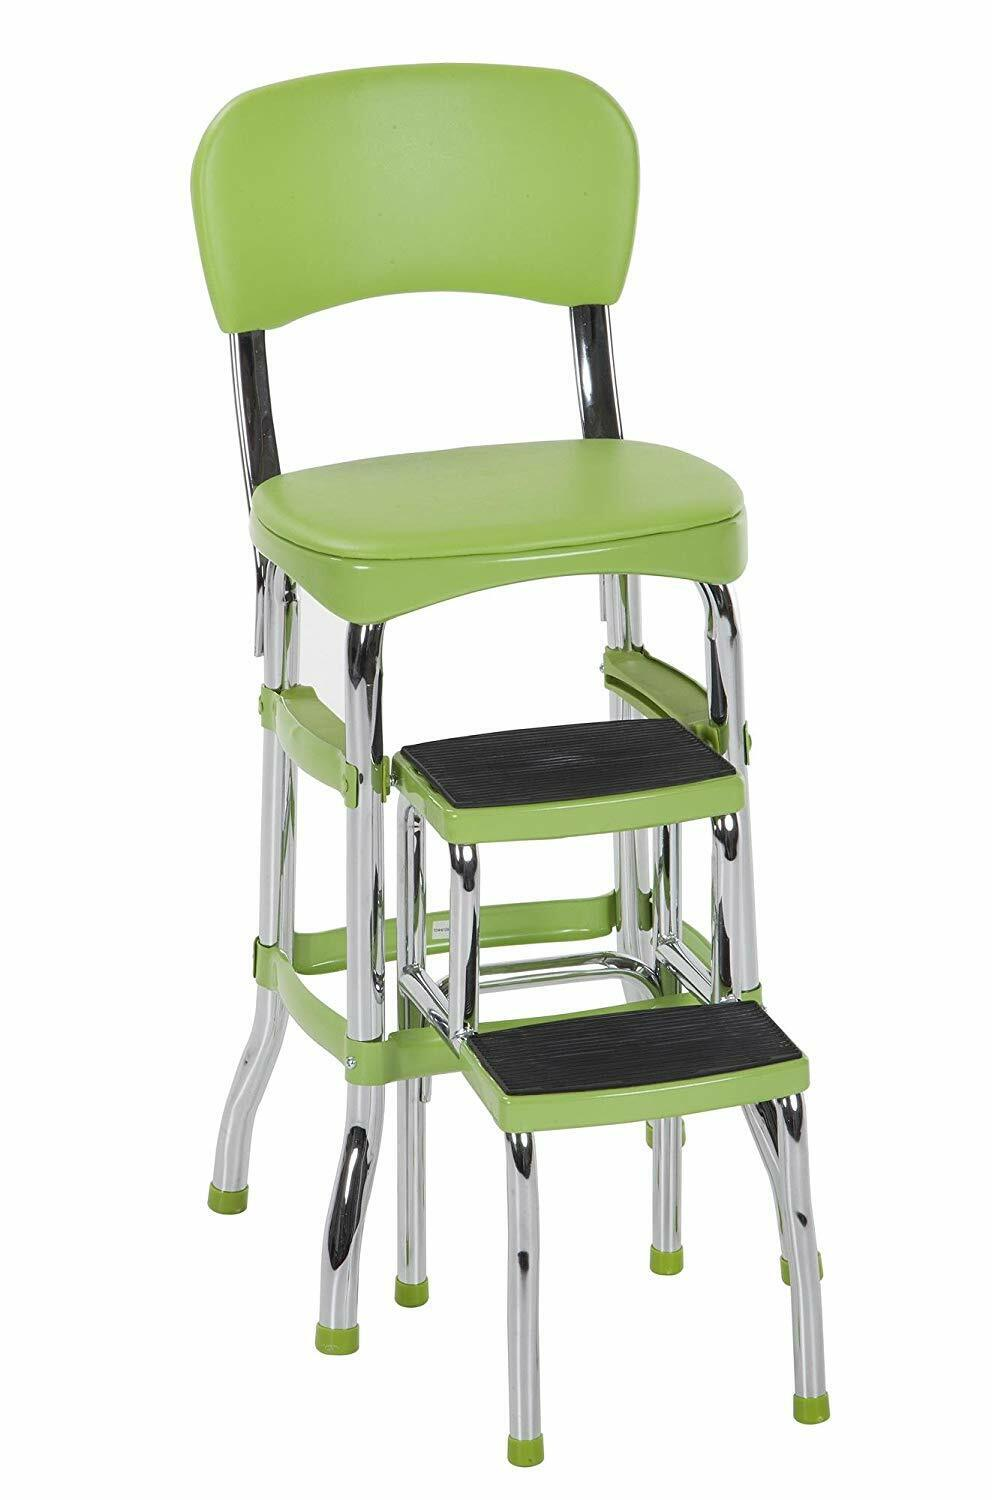 green folding step stool kitchen office home